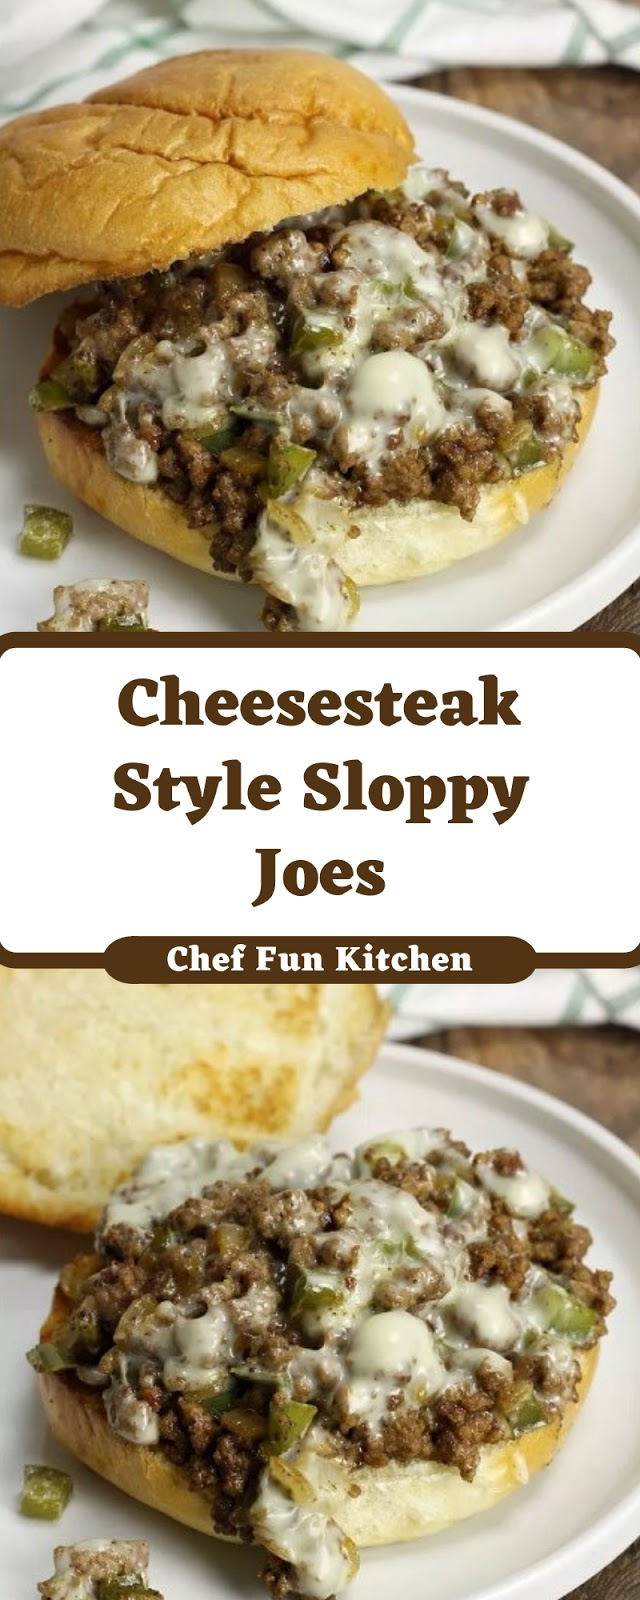 Cheesesteak Style Sloppy Joes